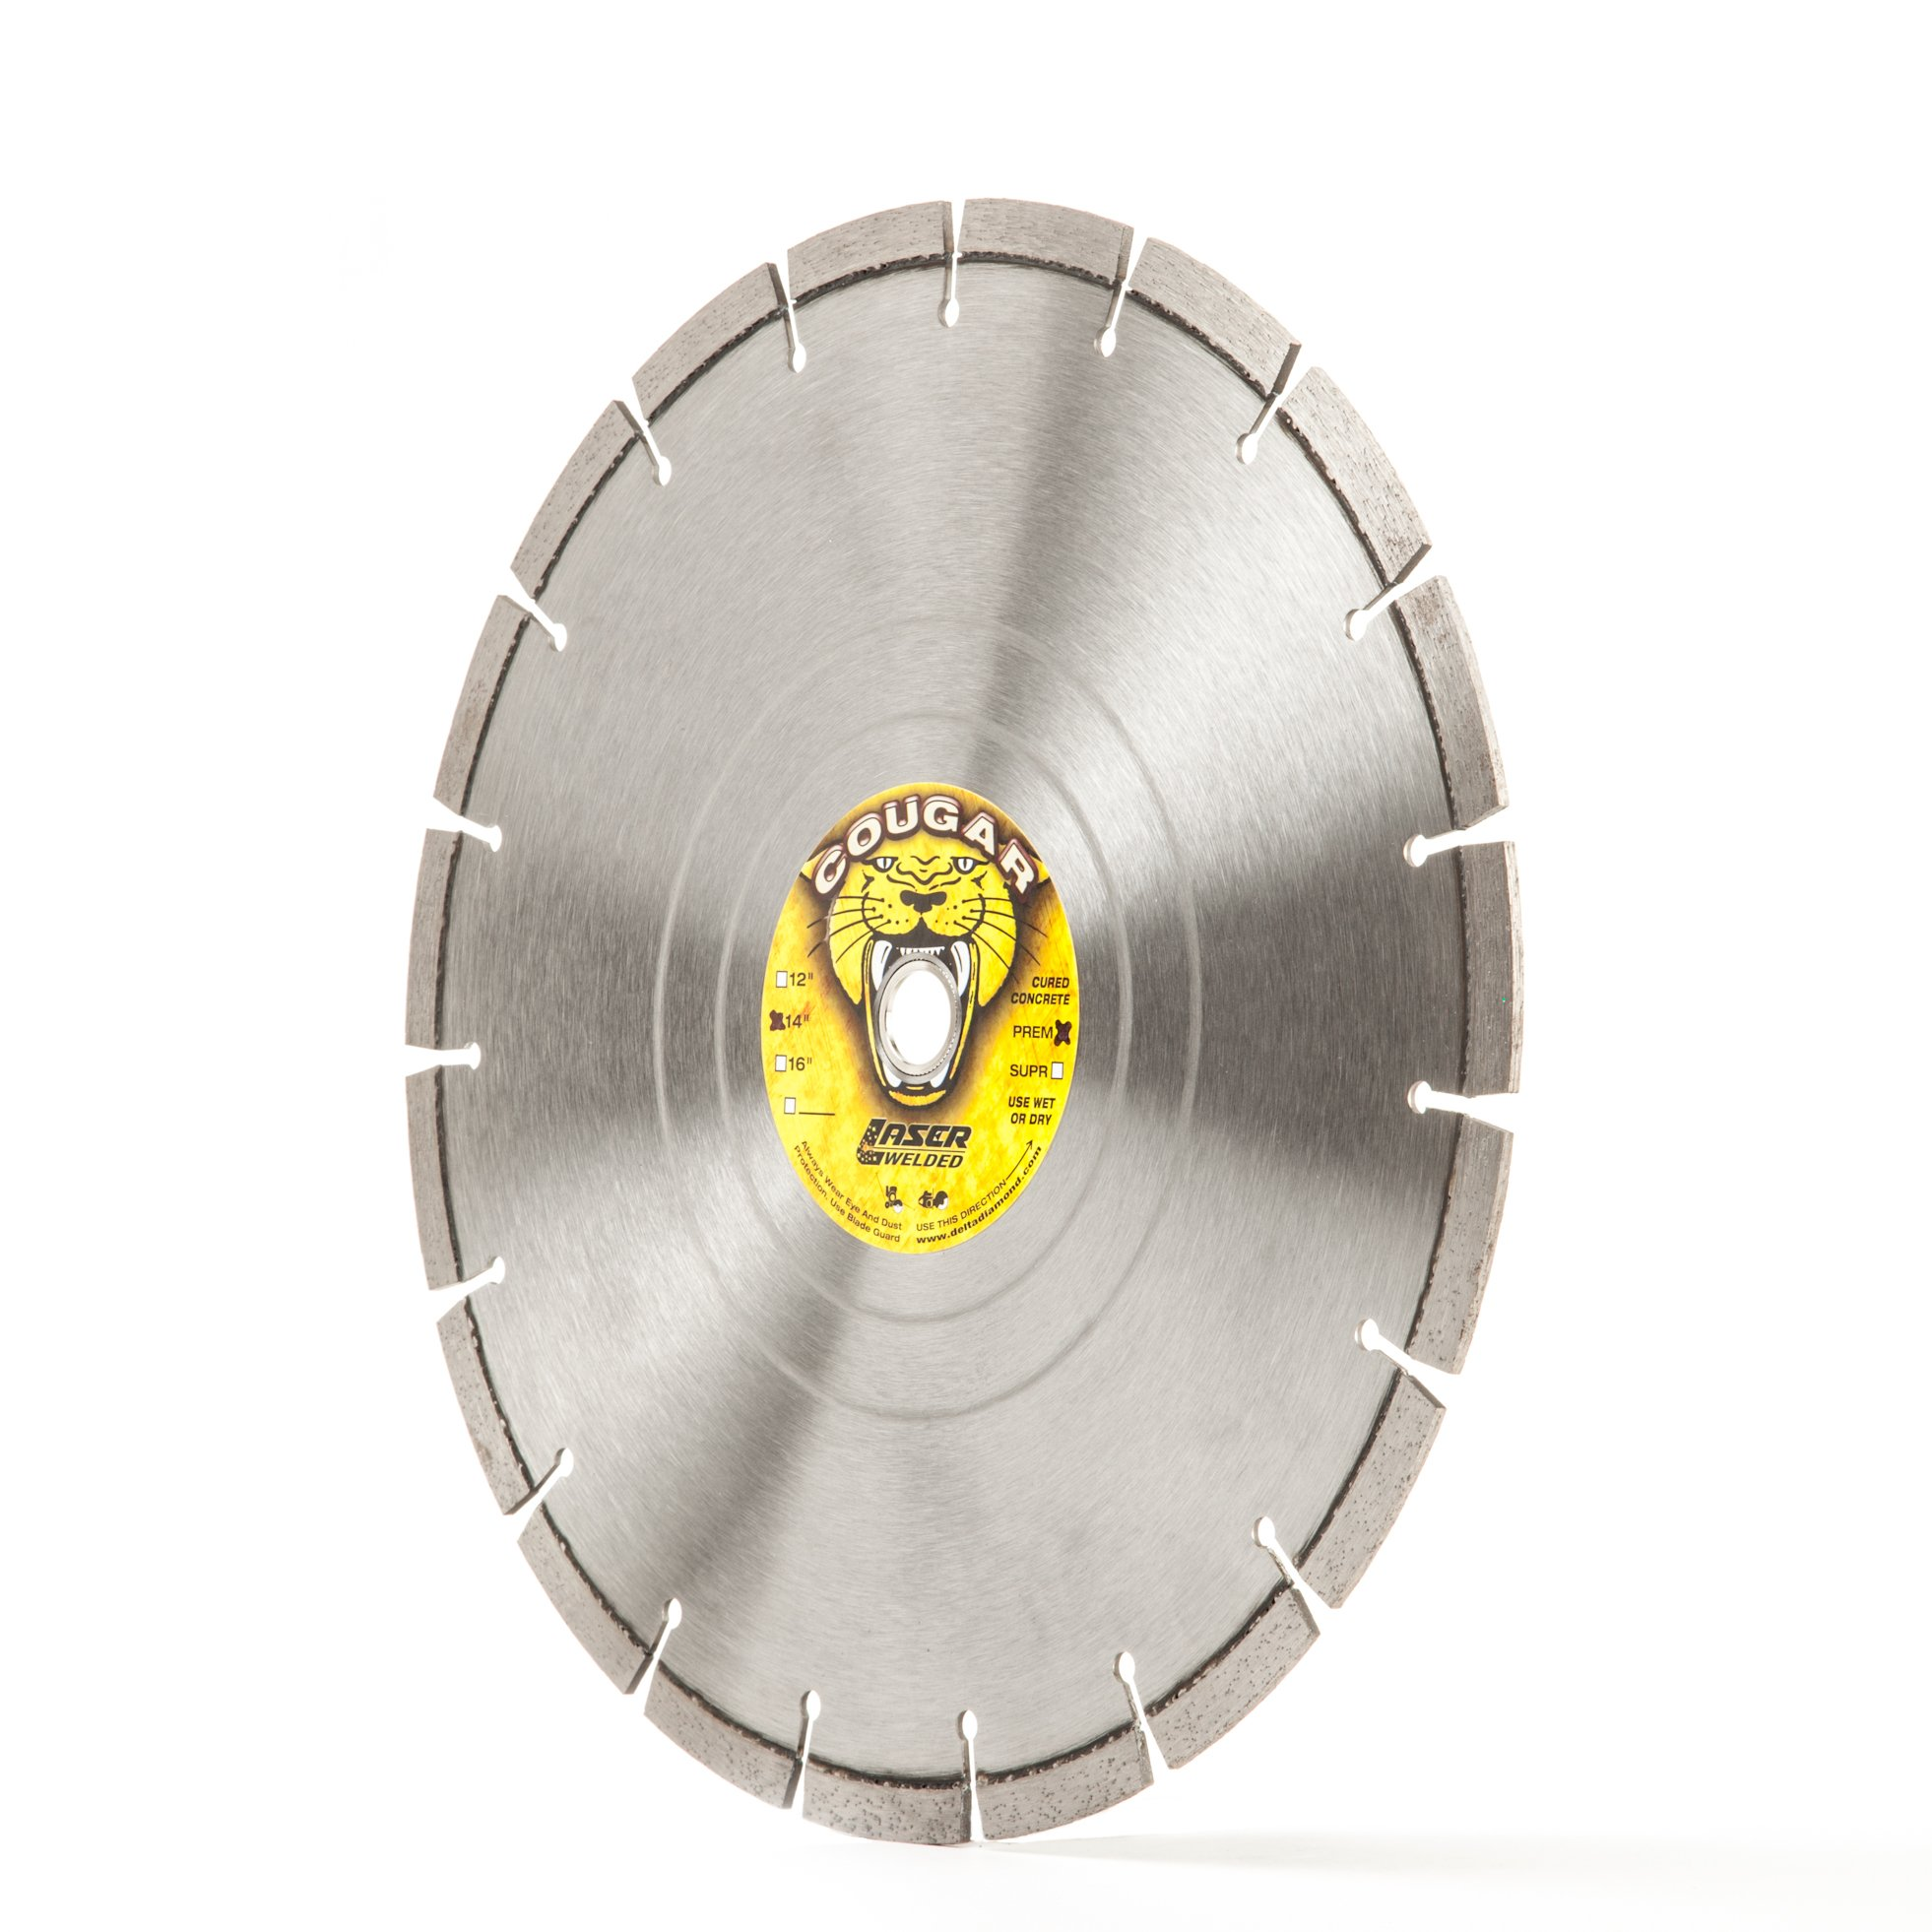 Cougar HS 14-Inch Concrete Saw Diamond Blade, 14'' X .125'' X 1''-20MM Bushing for Wet or Dry Cutting Concrete, Masonry, Brick, Block, Pavers, Stone and Similar. Made in USA by DELTA DIAMOND PRODUCTS INCORPORATED